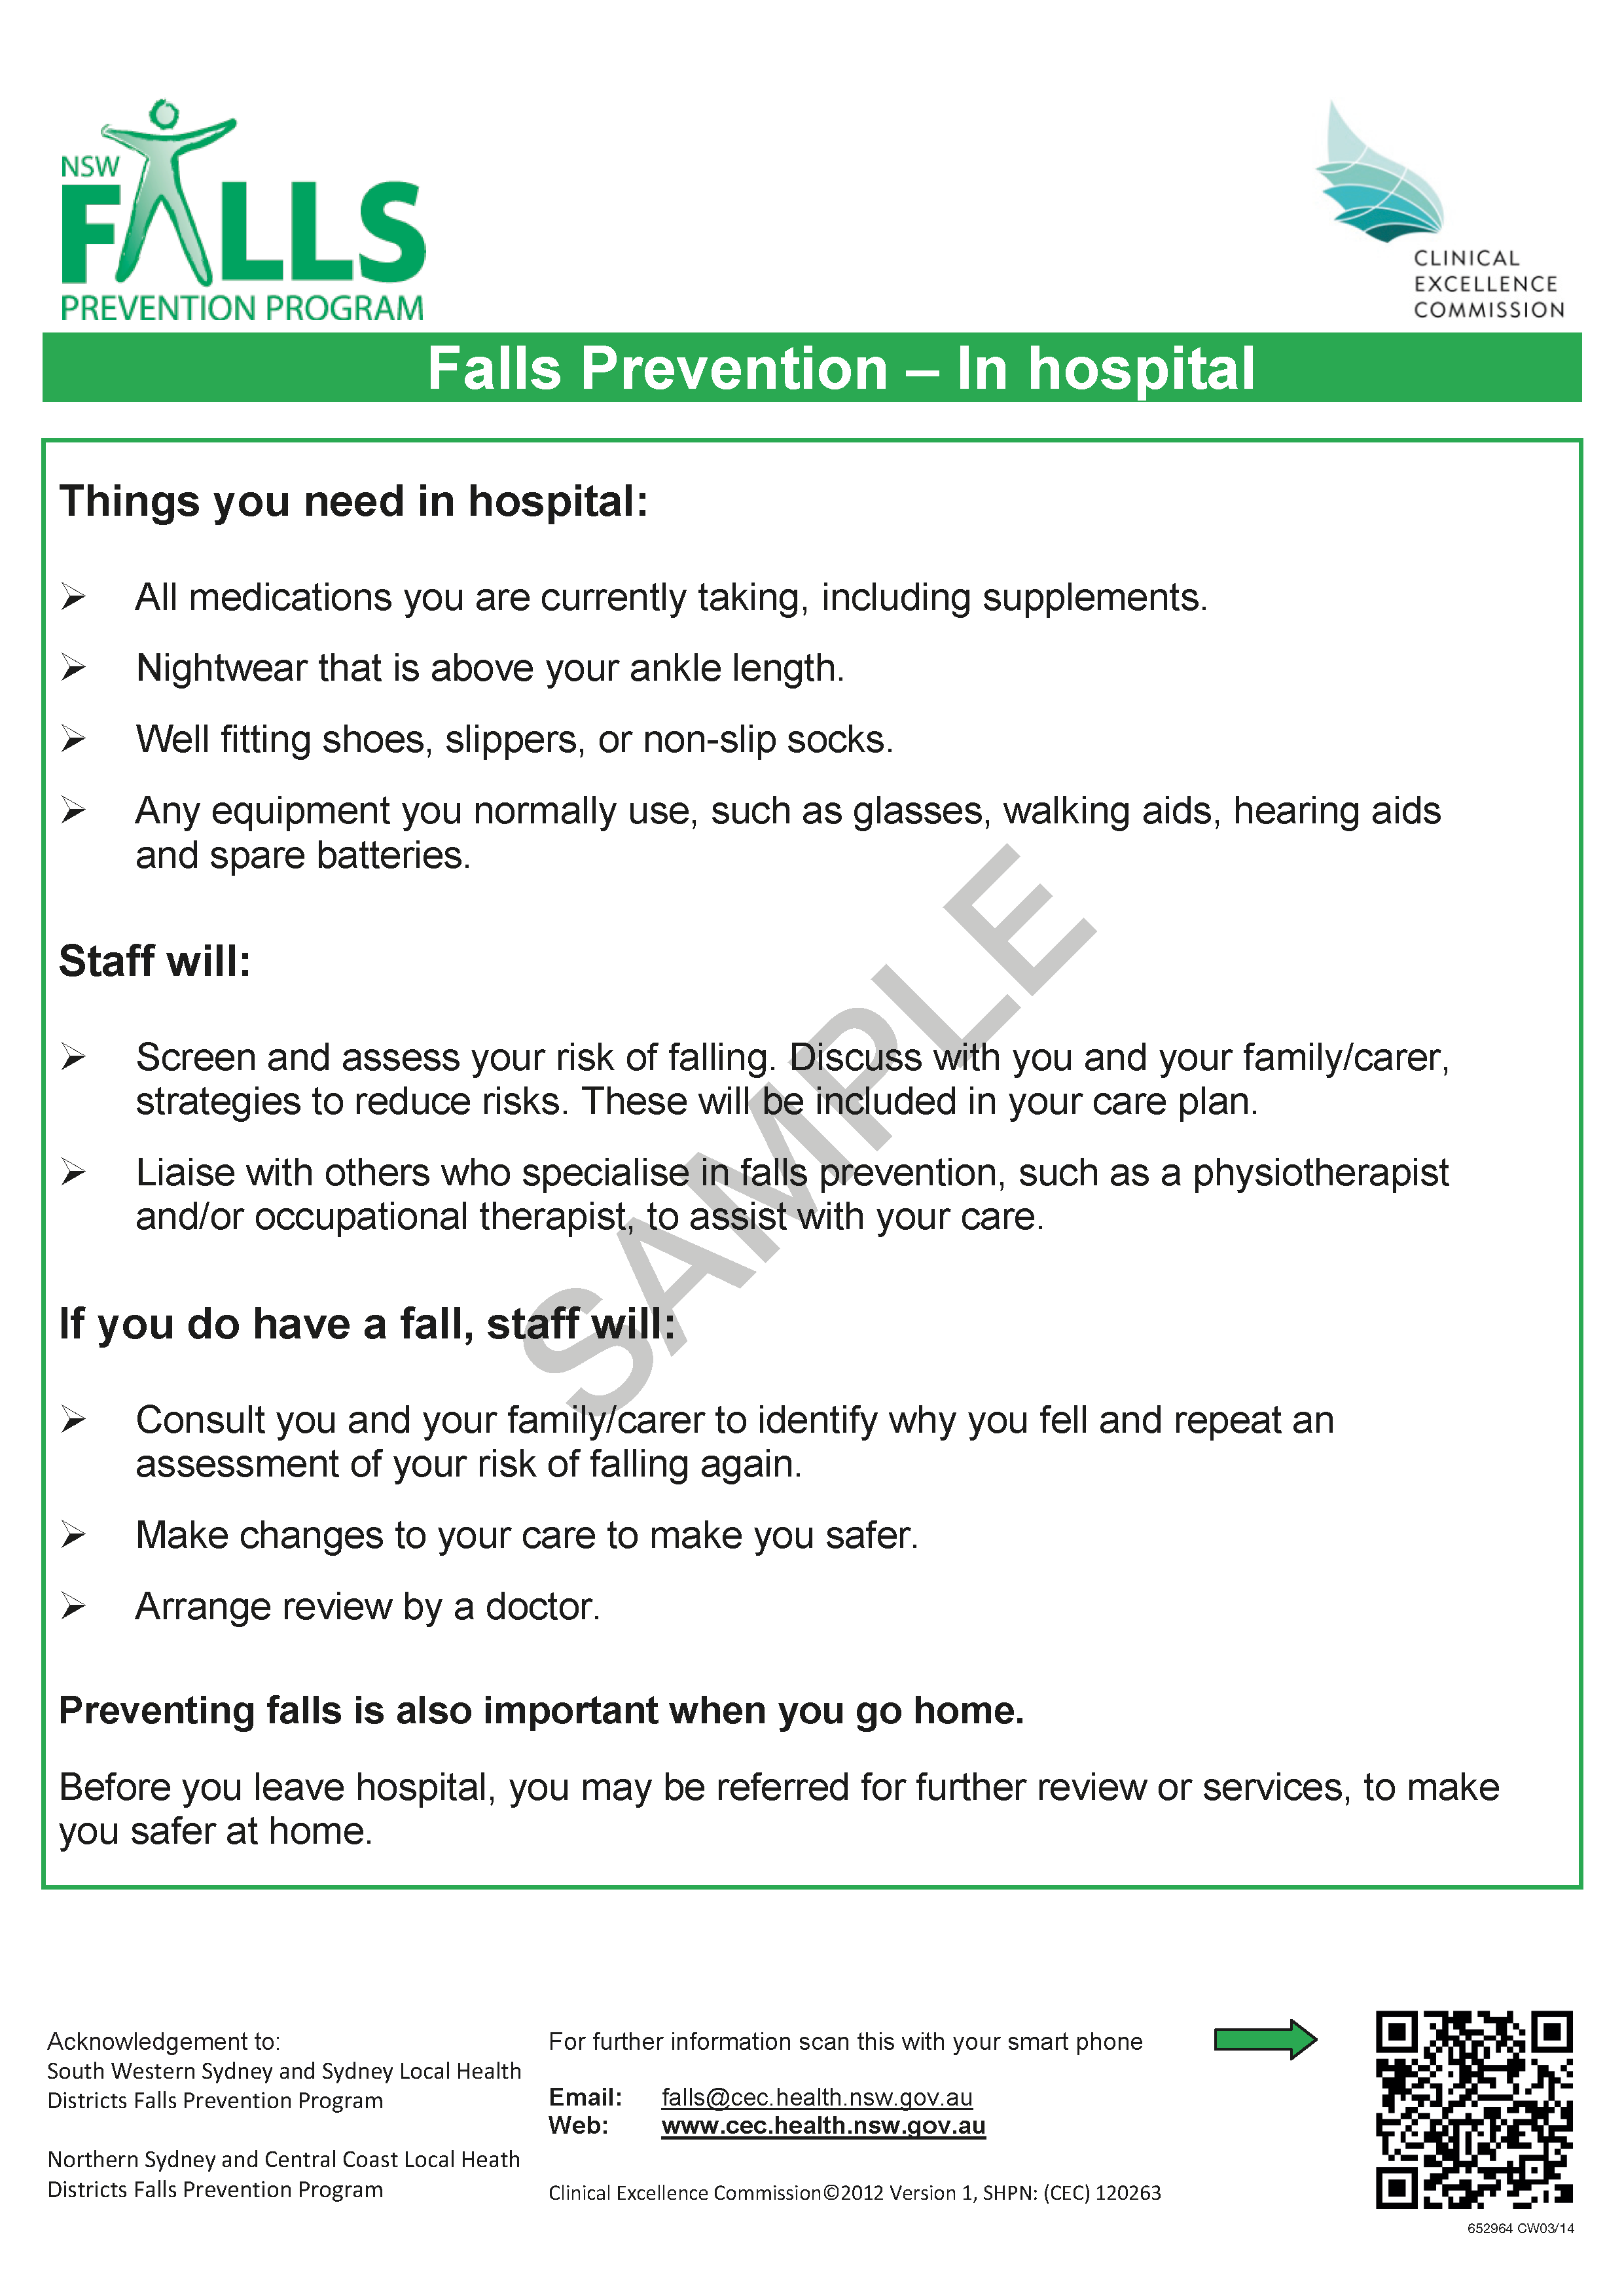 652964 - Falls Prevention CEC in Hospital Fact Sheet